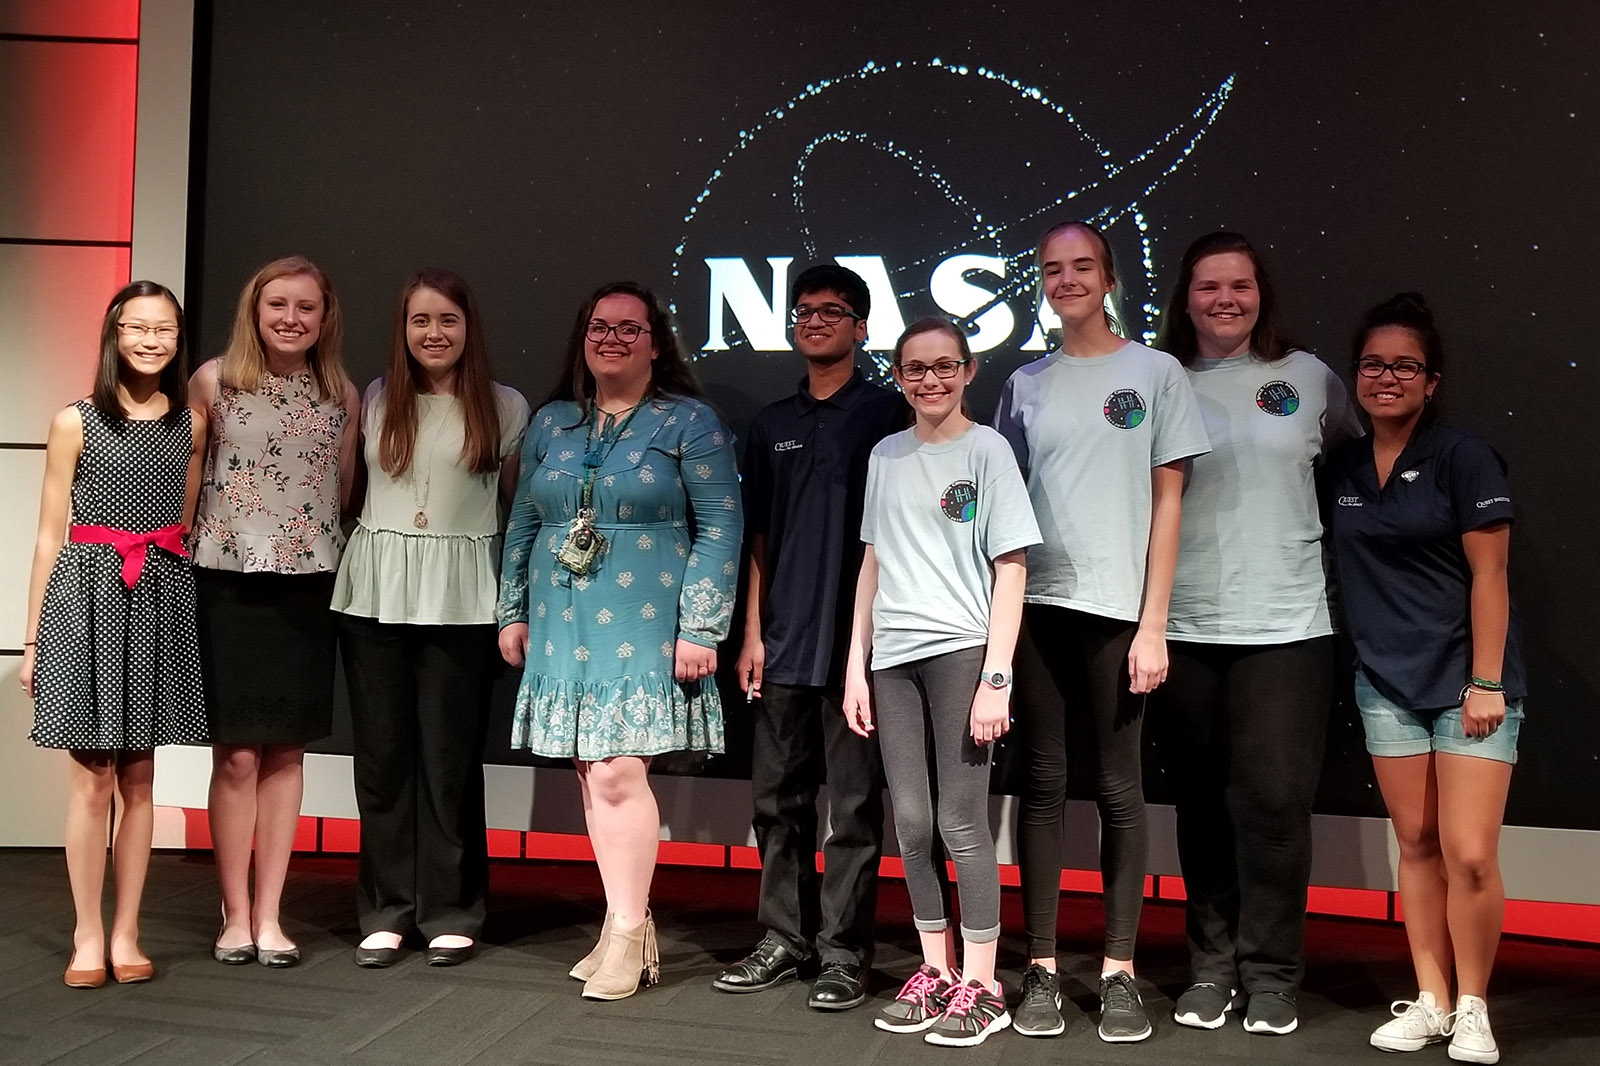 SpaceX CRS-14 student stage presenters KSC